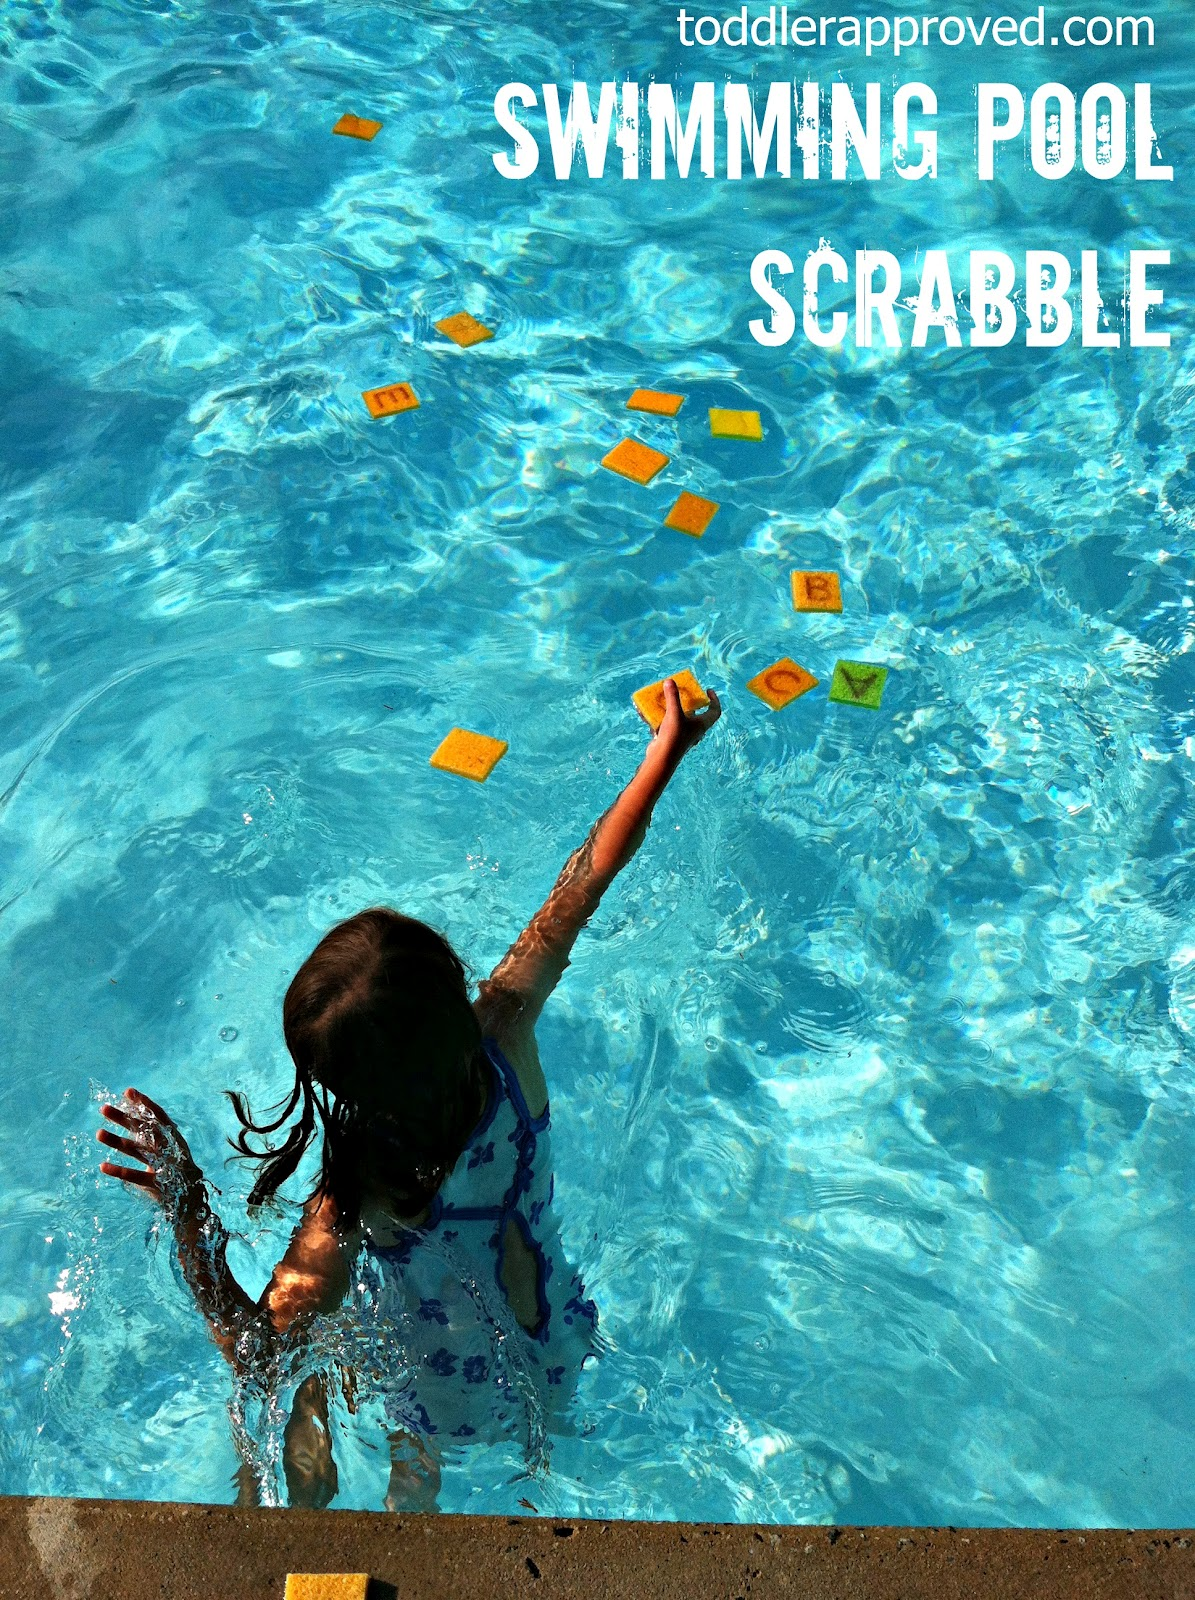 Toddler approved swimming pool scrabble - Games to play in the swimming pool ...